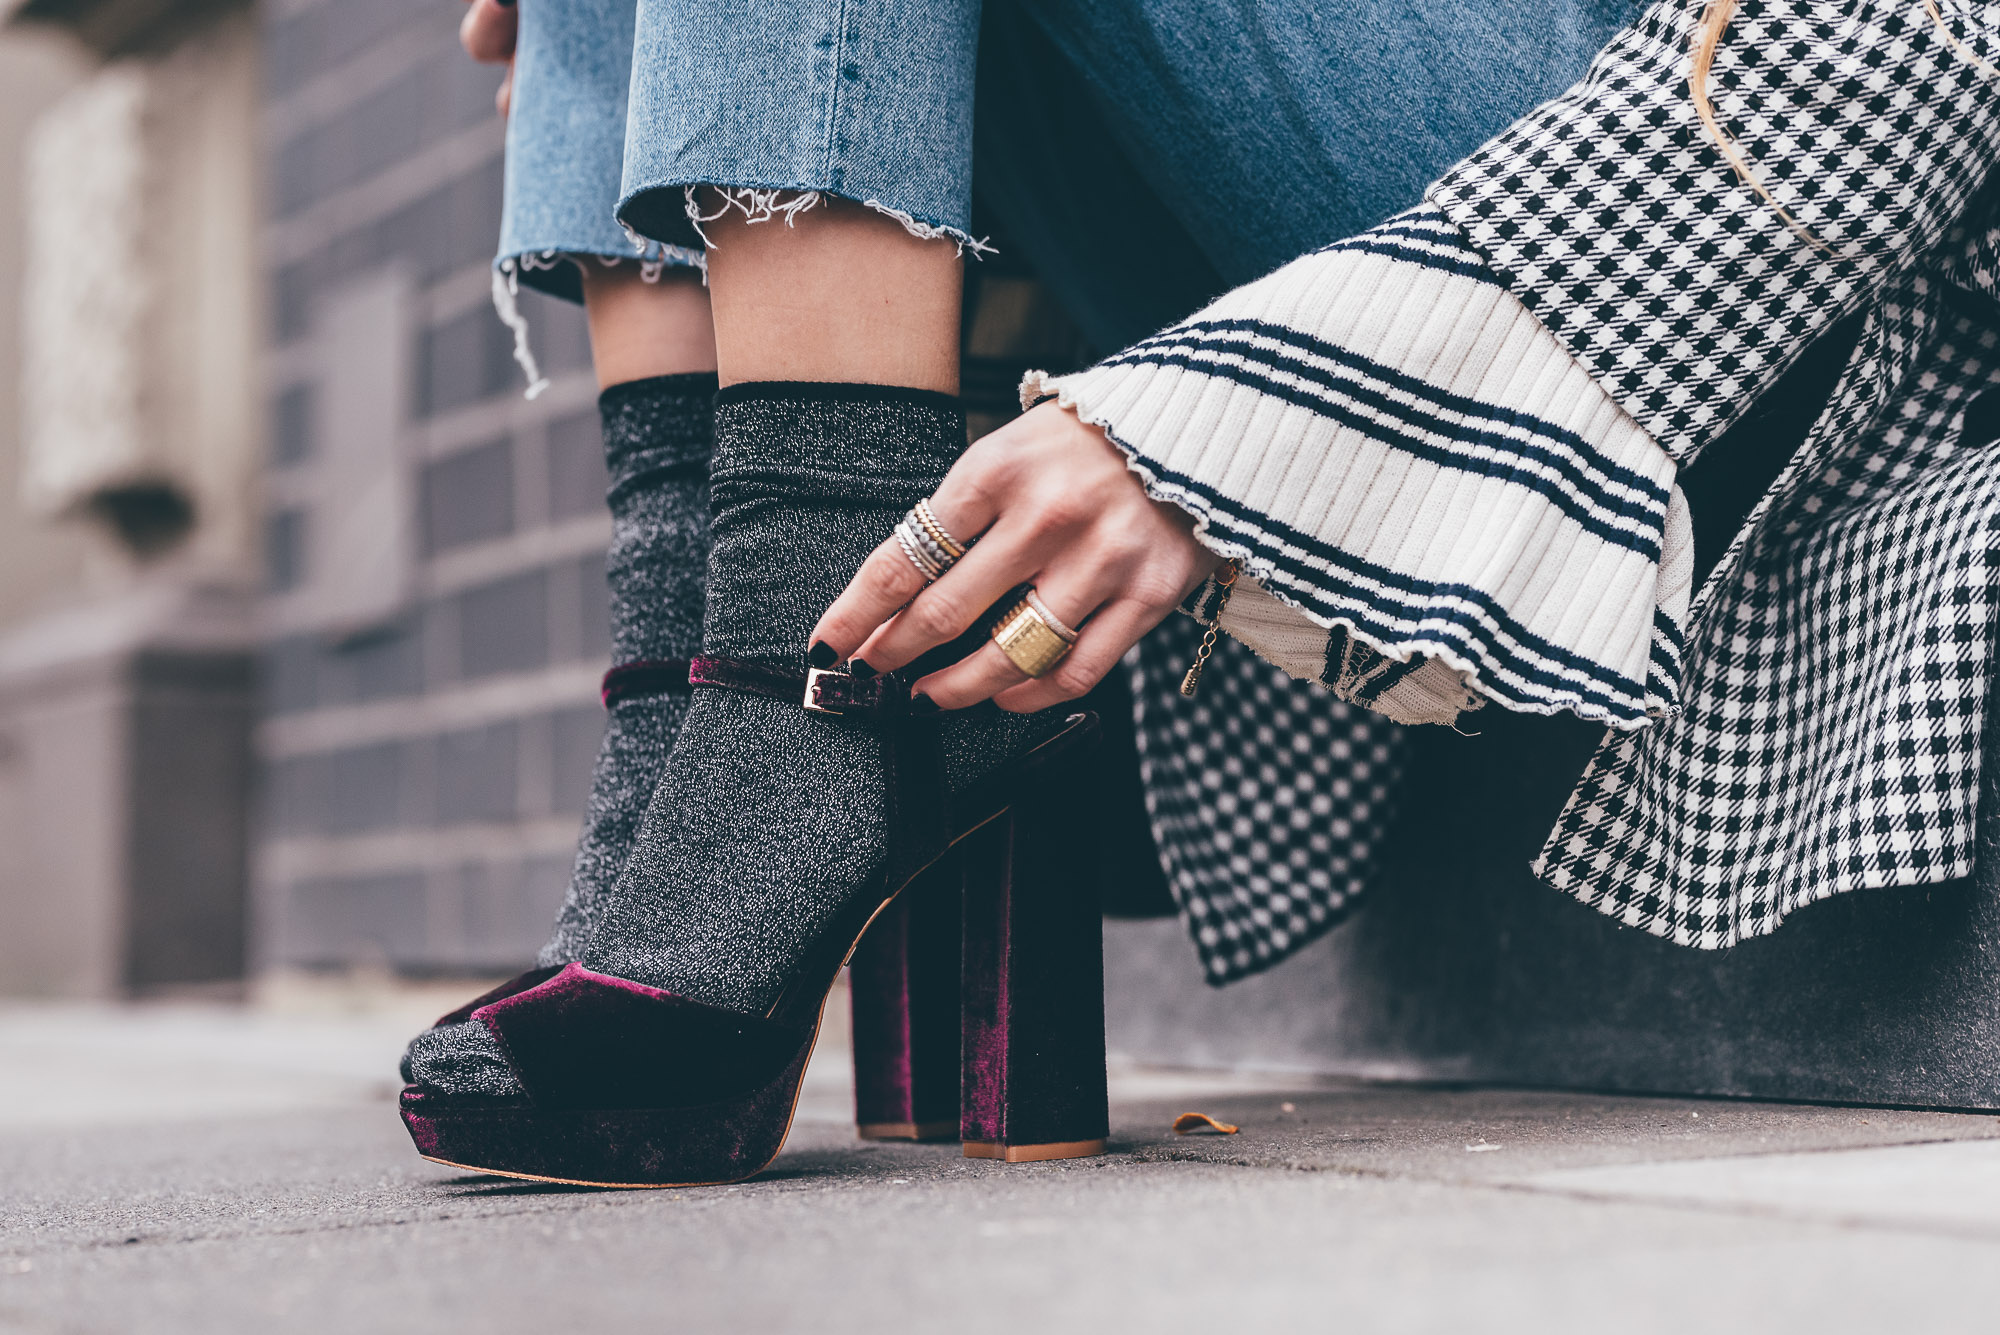 Buffalo Velvet High Heels & Glitter Socks | Lisa Fiege